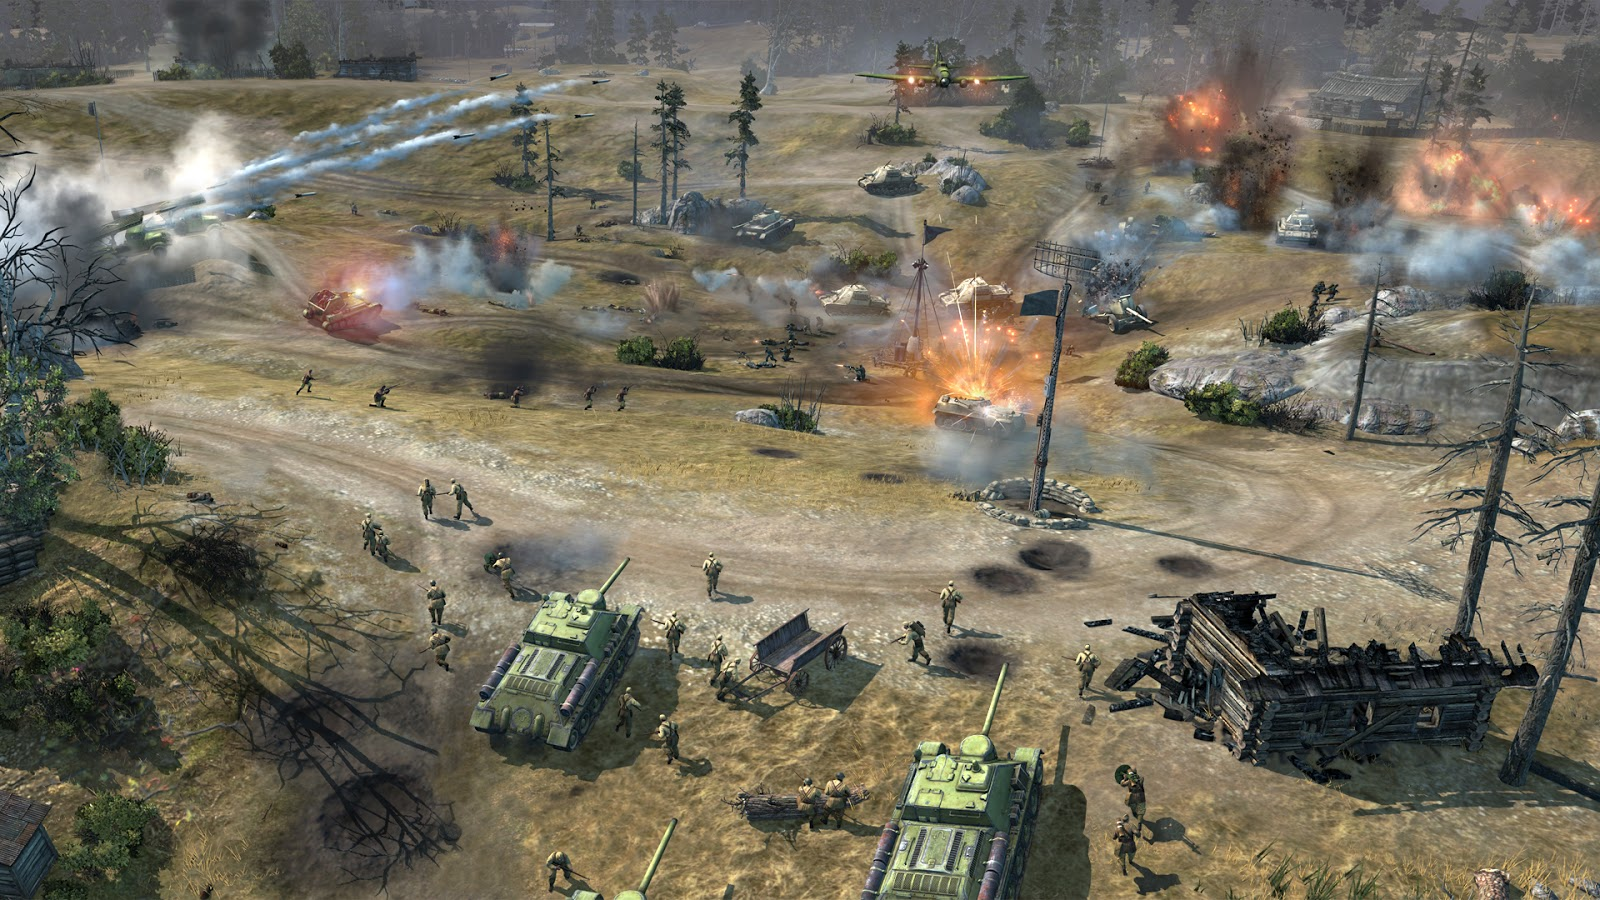 Case Blue Company Of Heroes 2 : Company of heroes 2 İnceleme urhoba